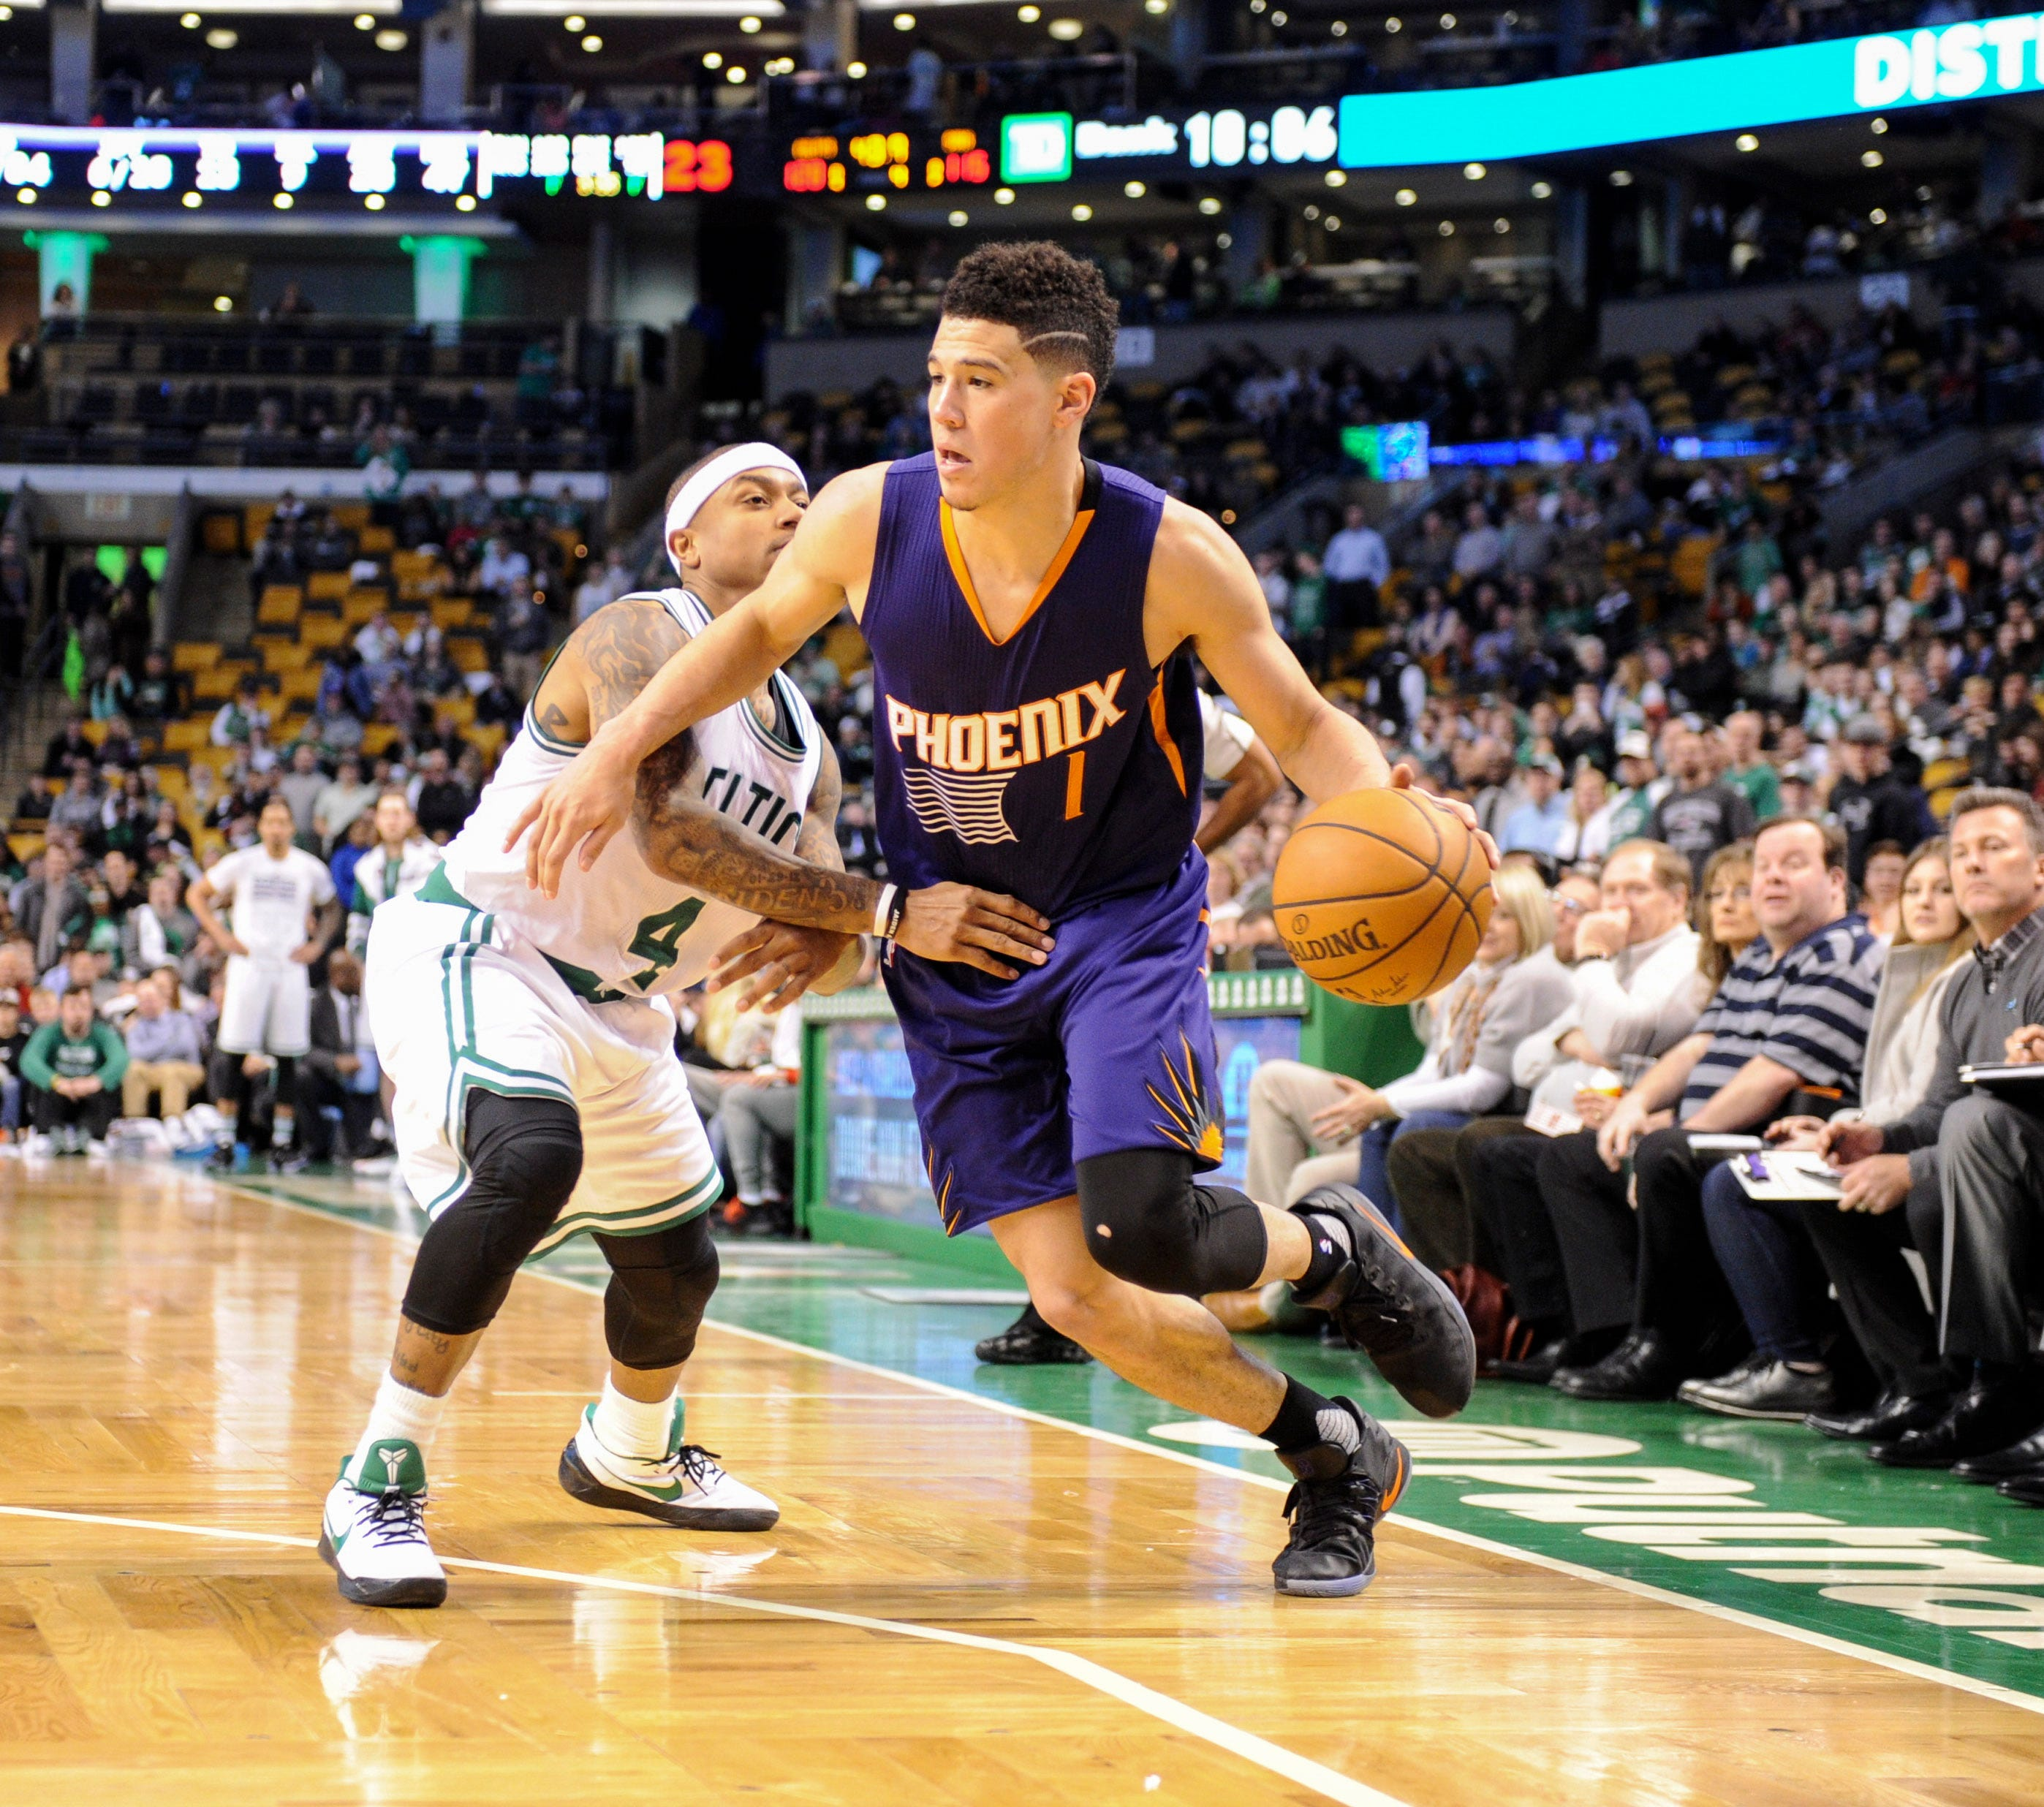 How it happened: Suns' Devin Booker goes for 70